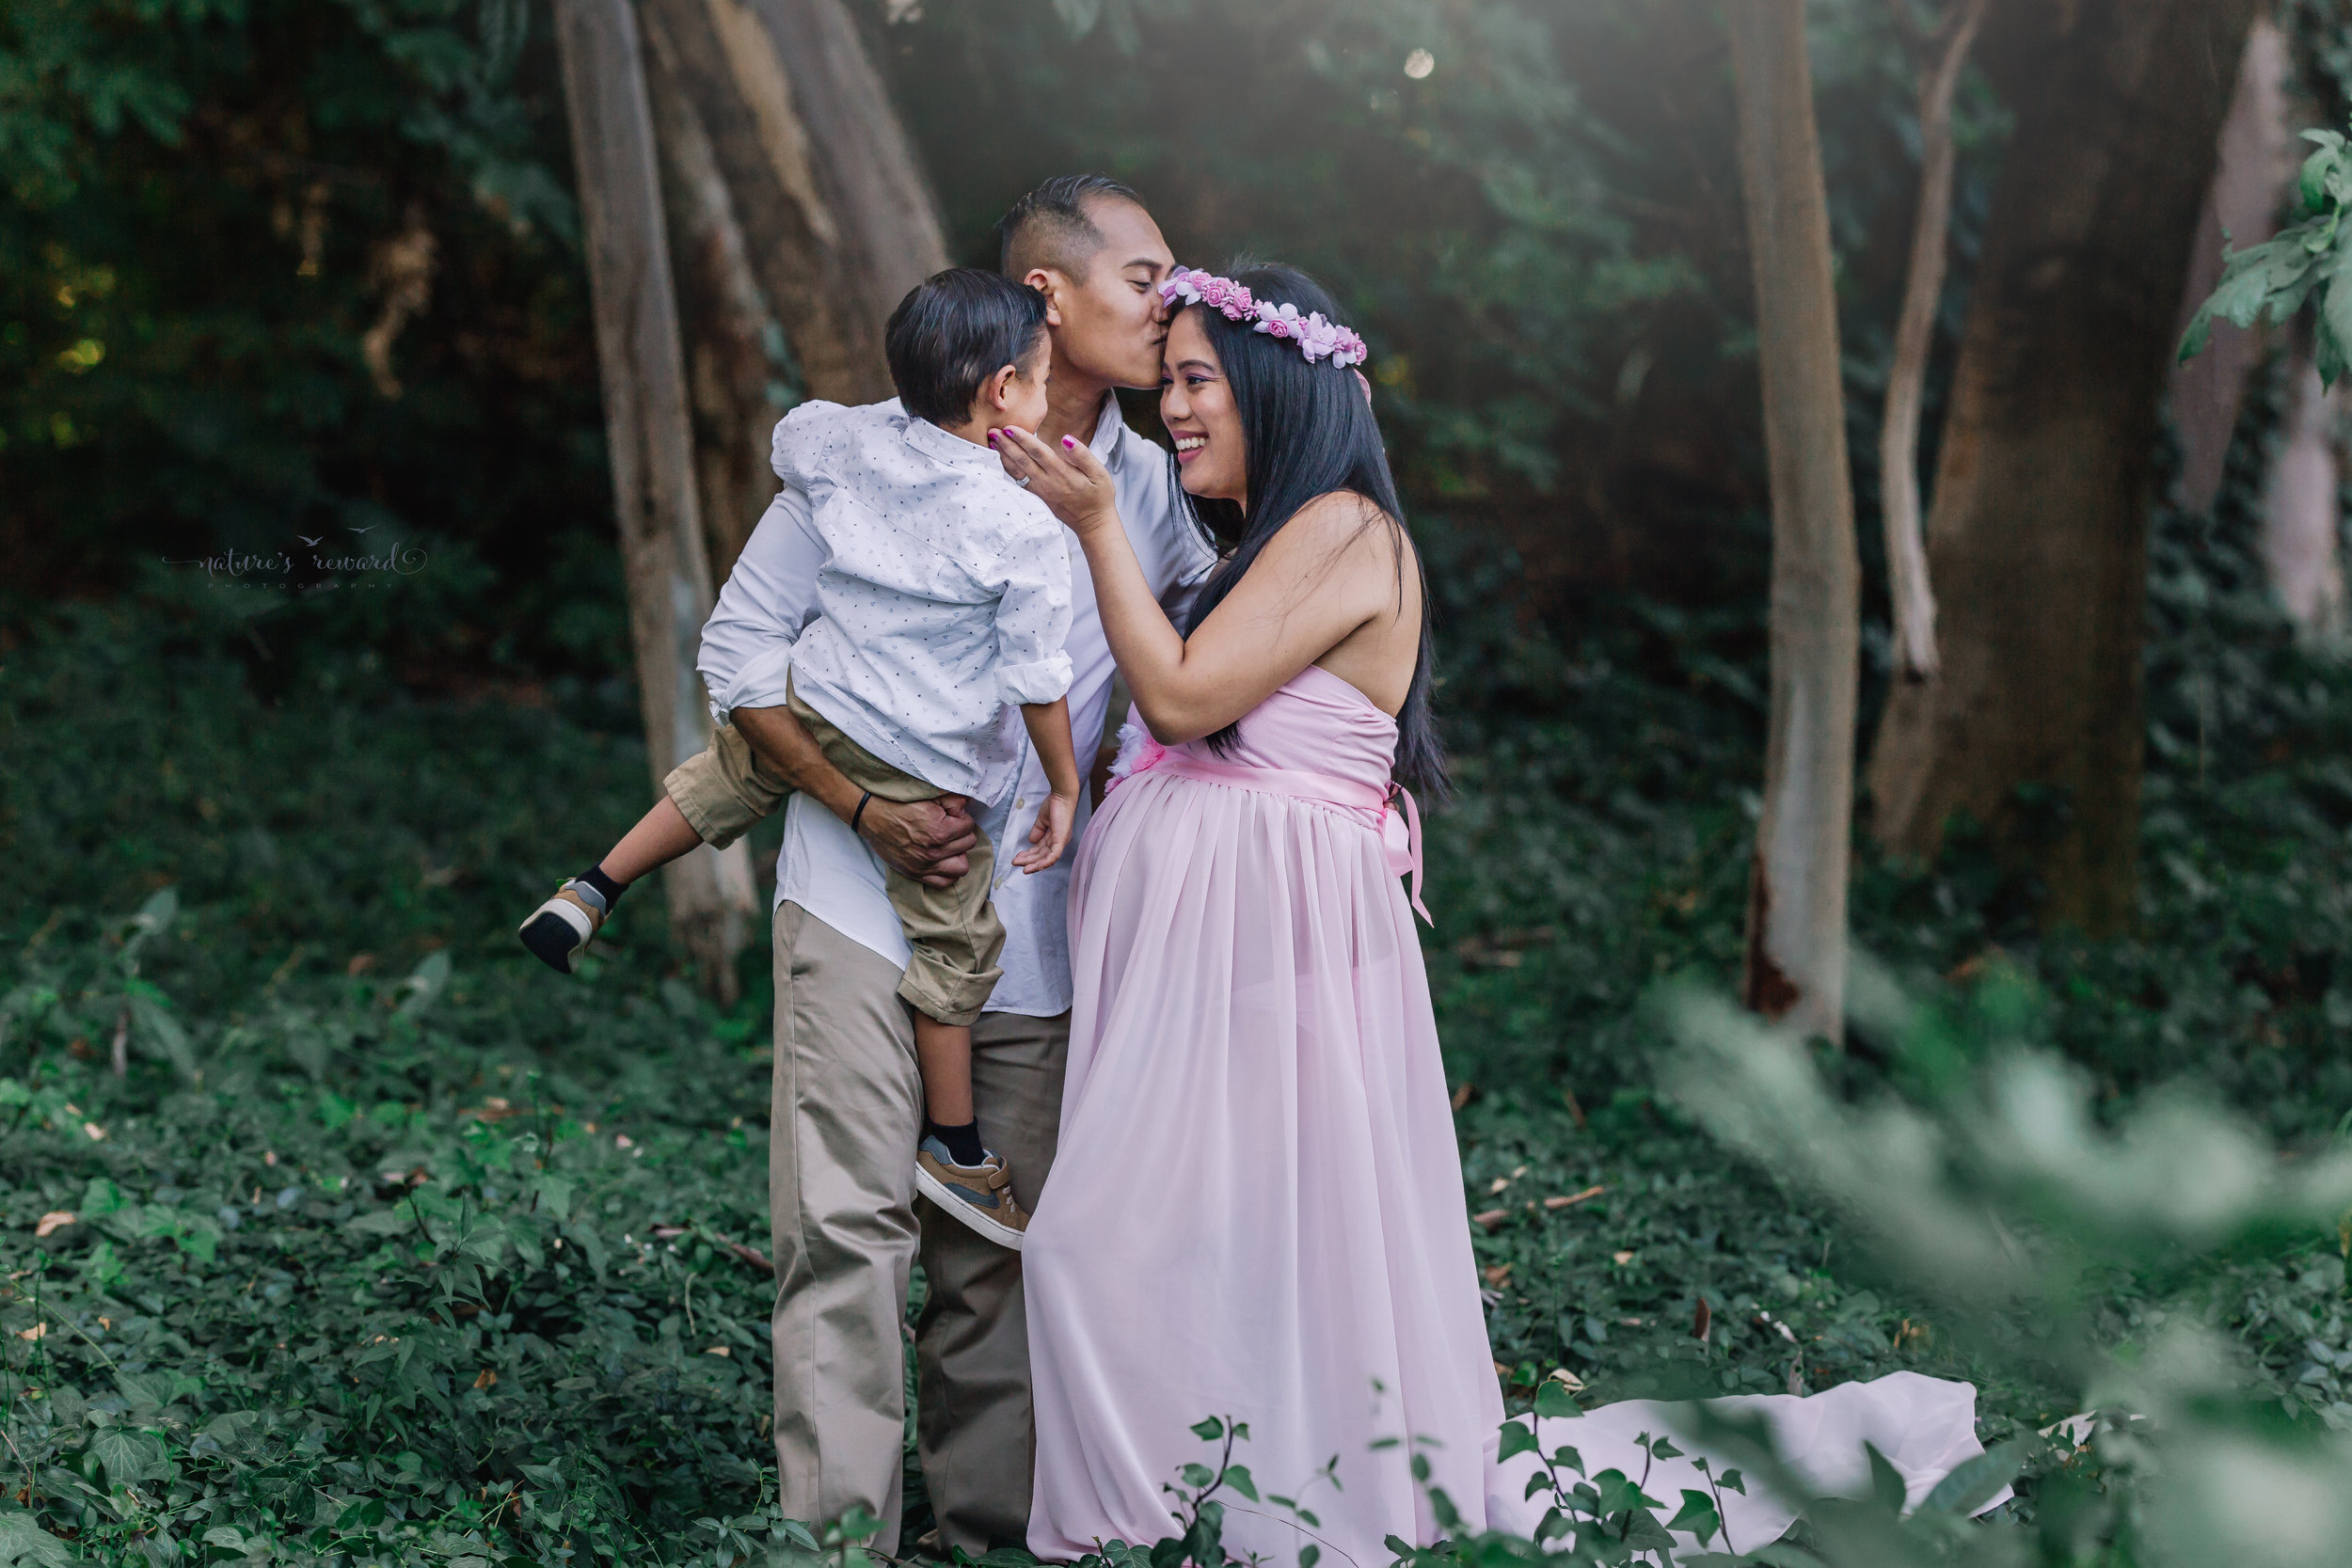 Loving moment in this family maternity portrait by Nature's Reward Photography